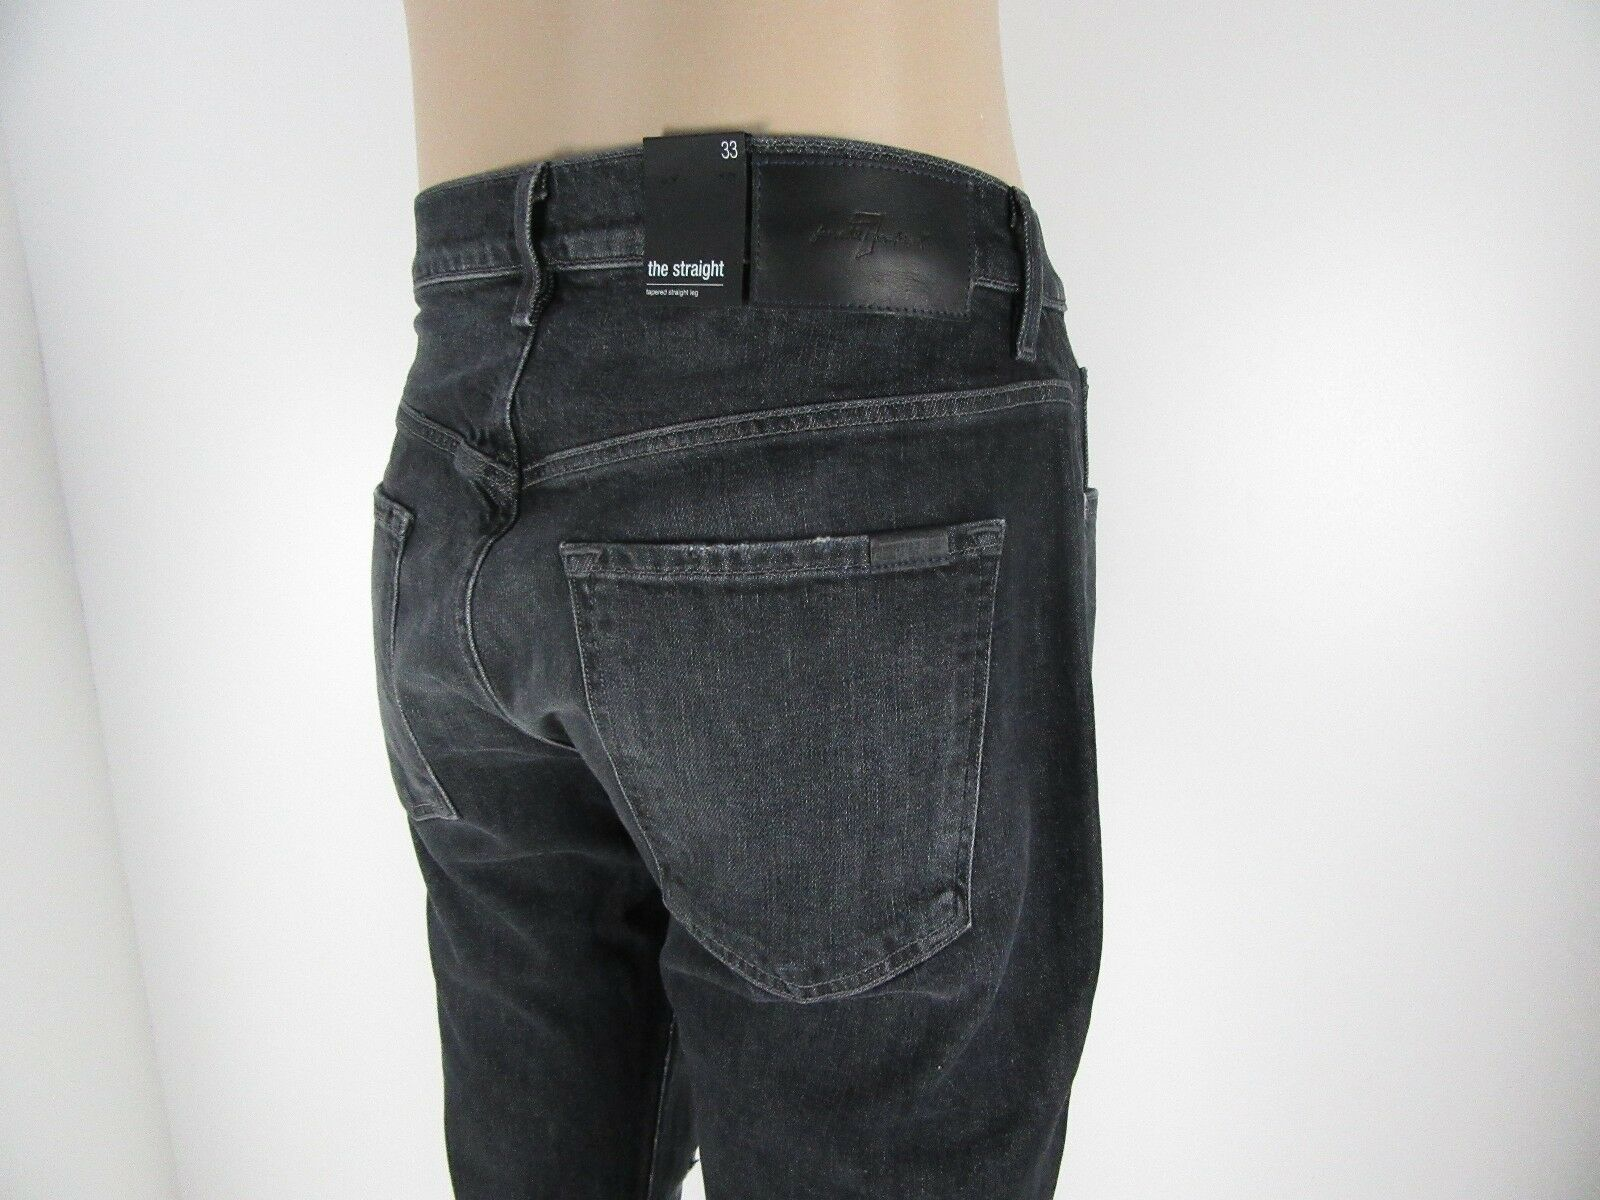 NWT Seven 7 For All Mankind THE STRAIGHT, Tapered Straight Leg,BLOT,Size 33,